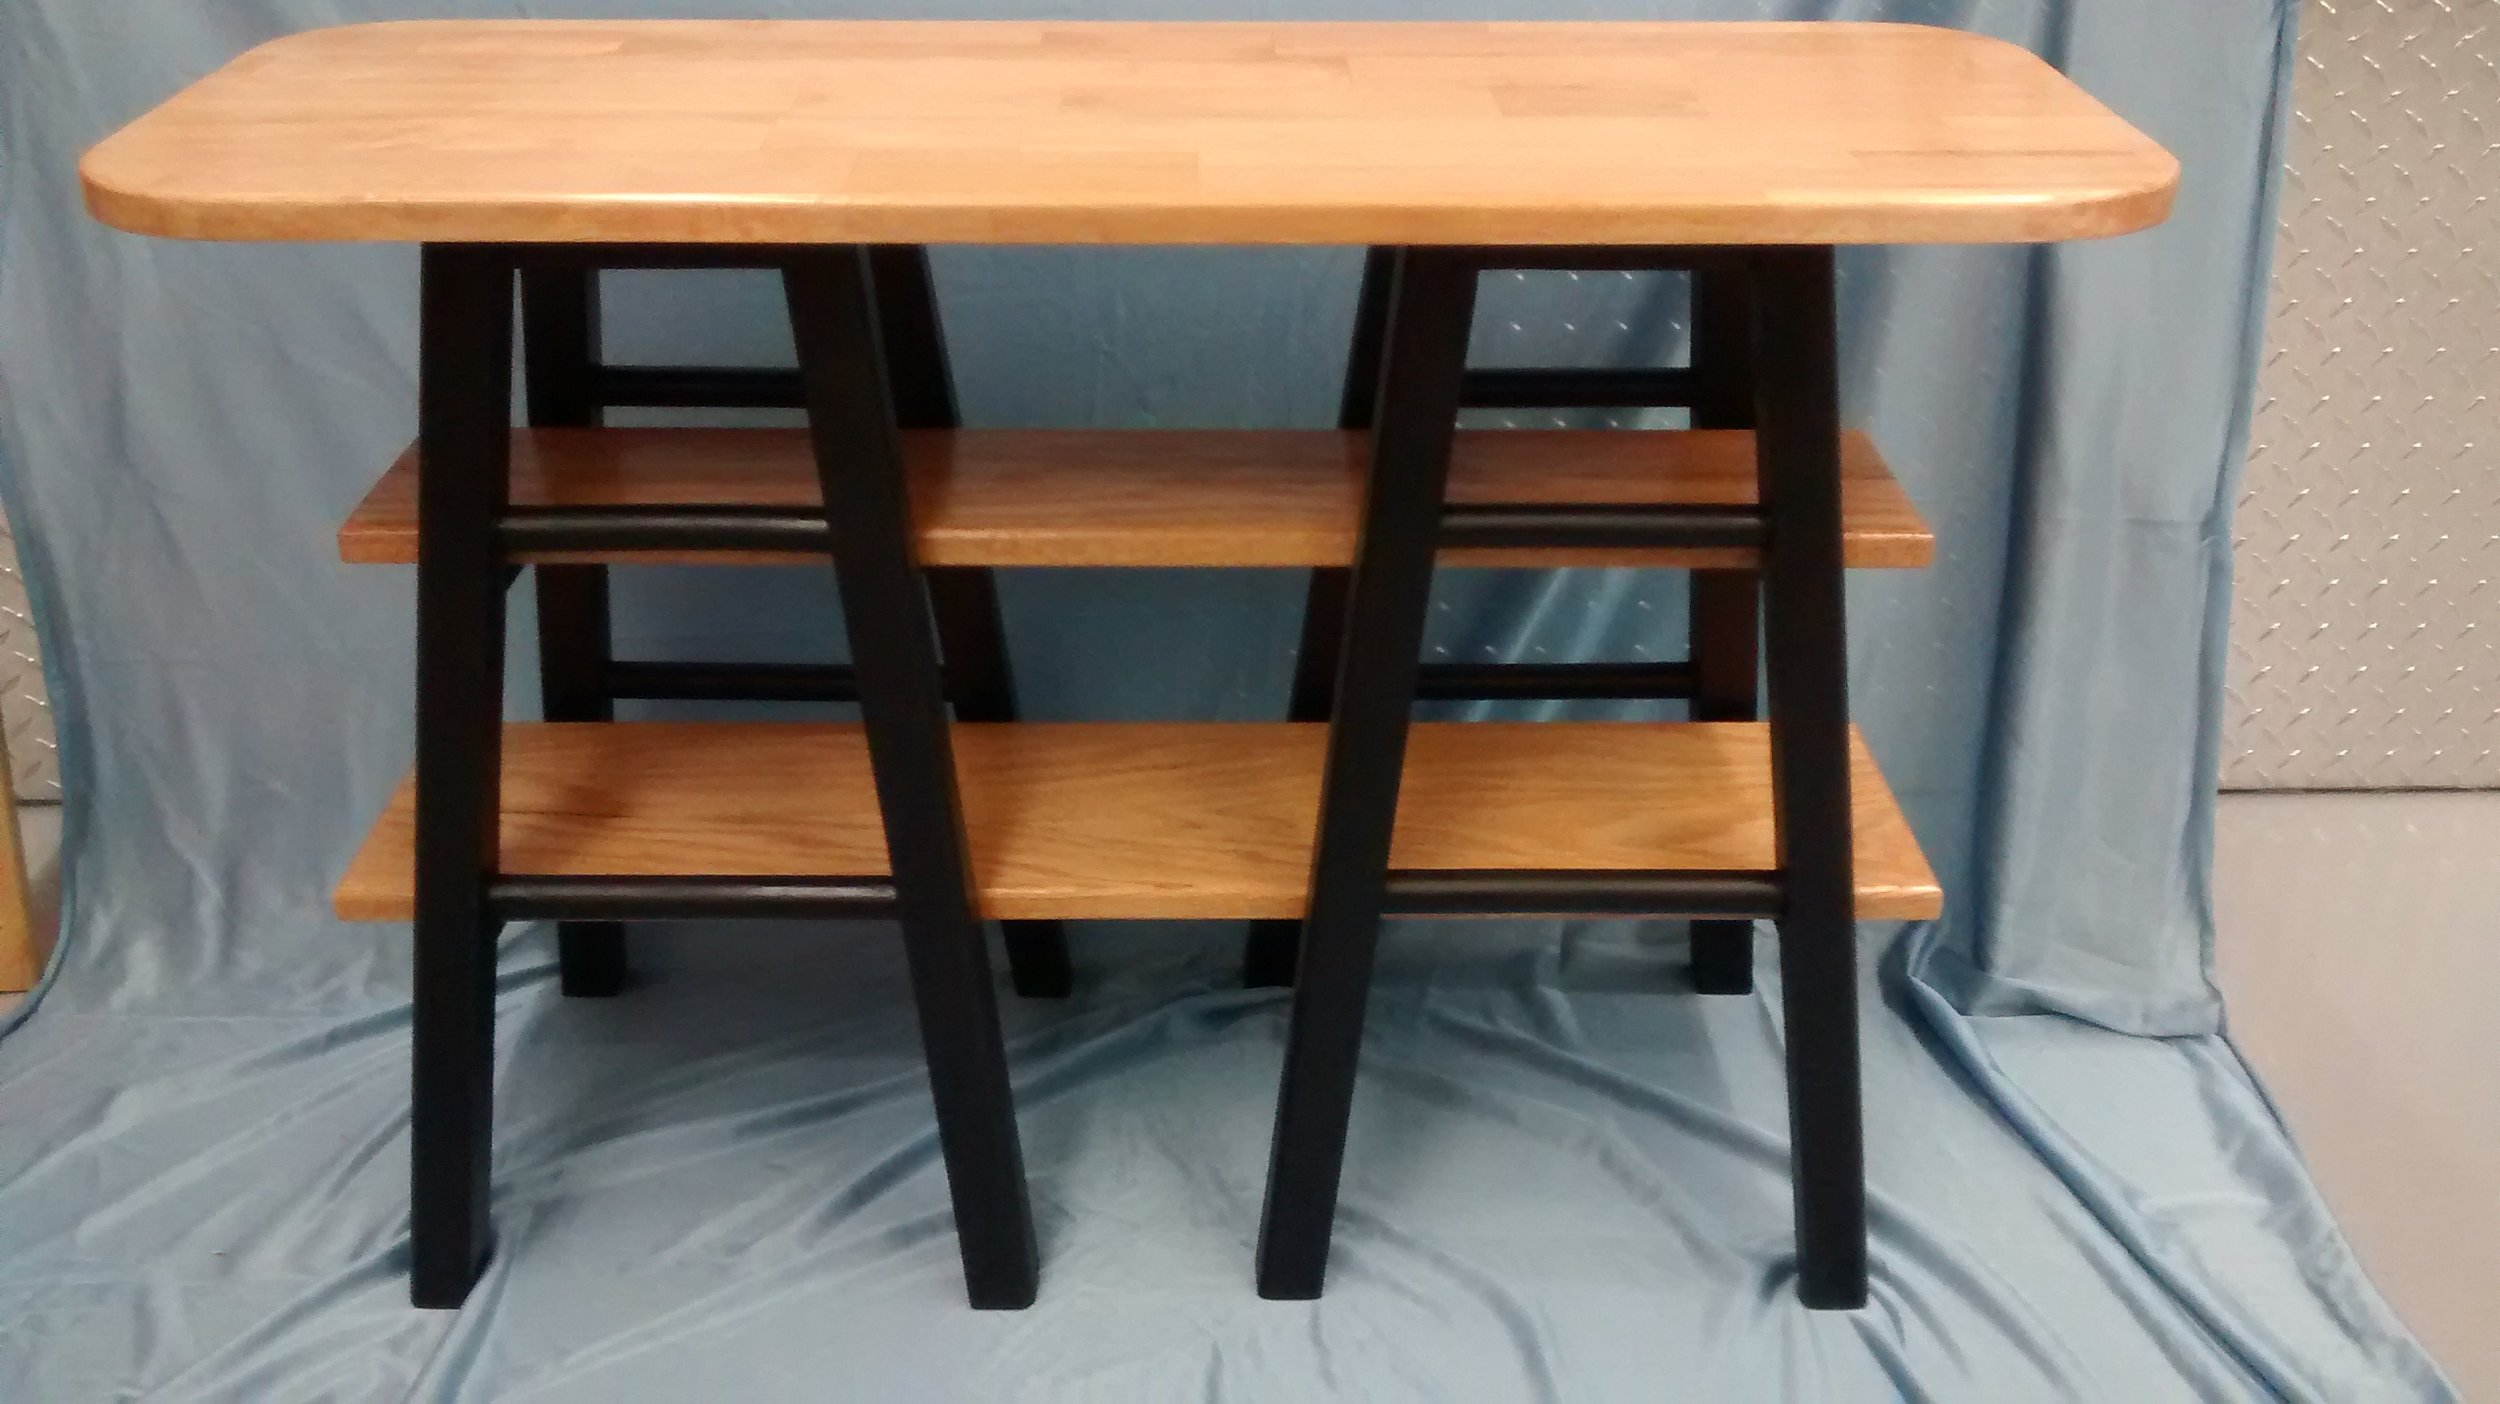 End or Side Table Made from Two Wooden Bar Stools and Reclaimed Wood